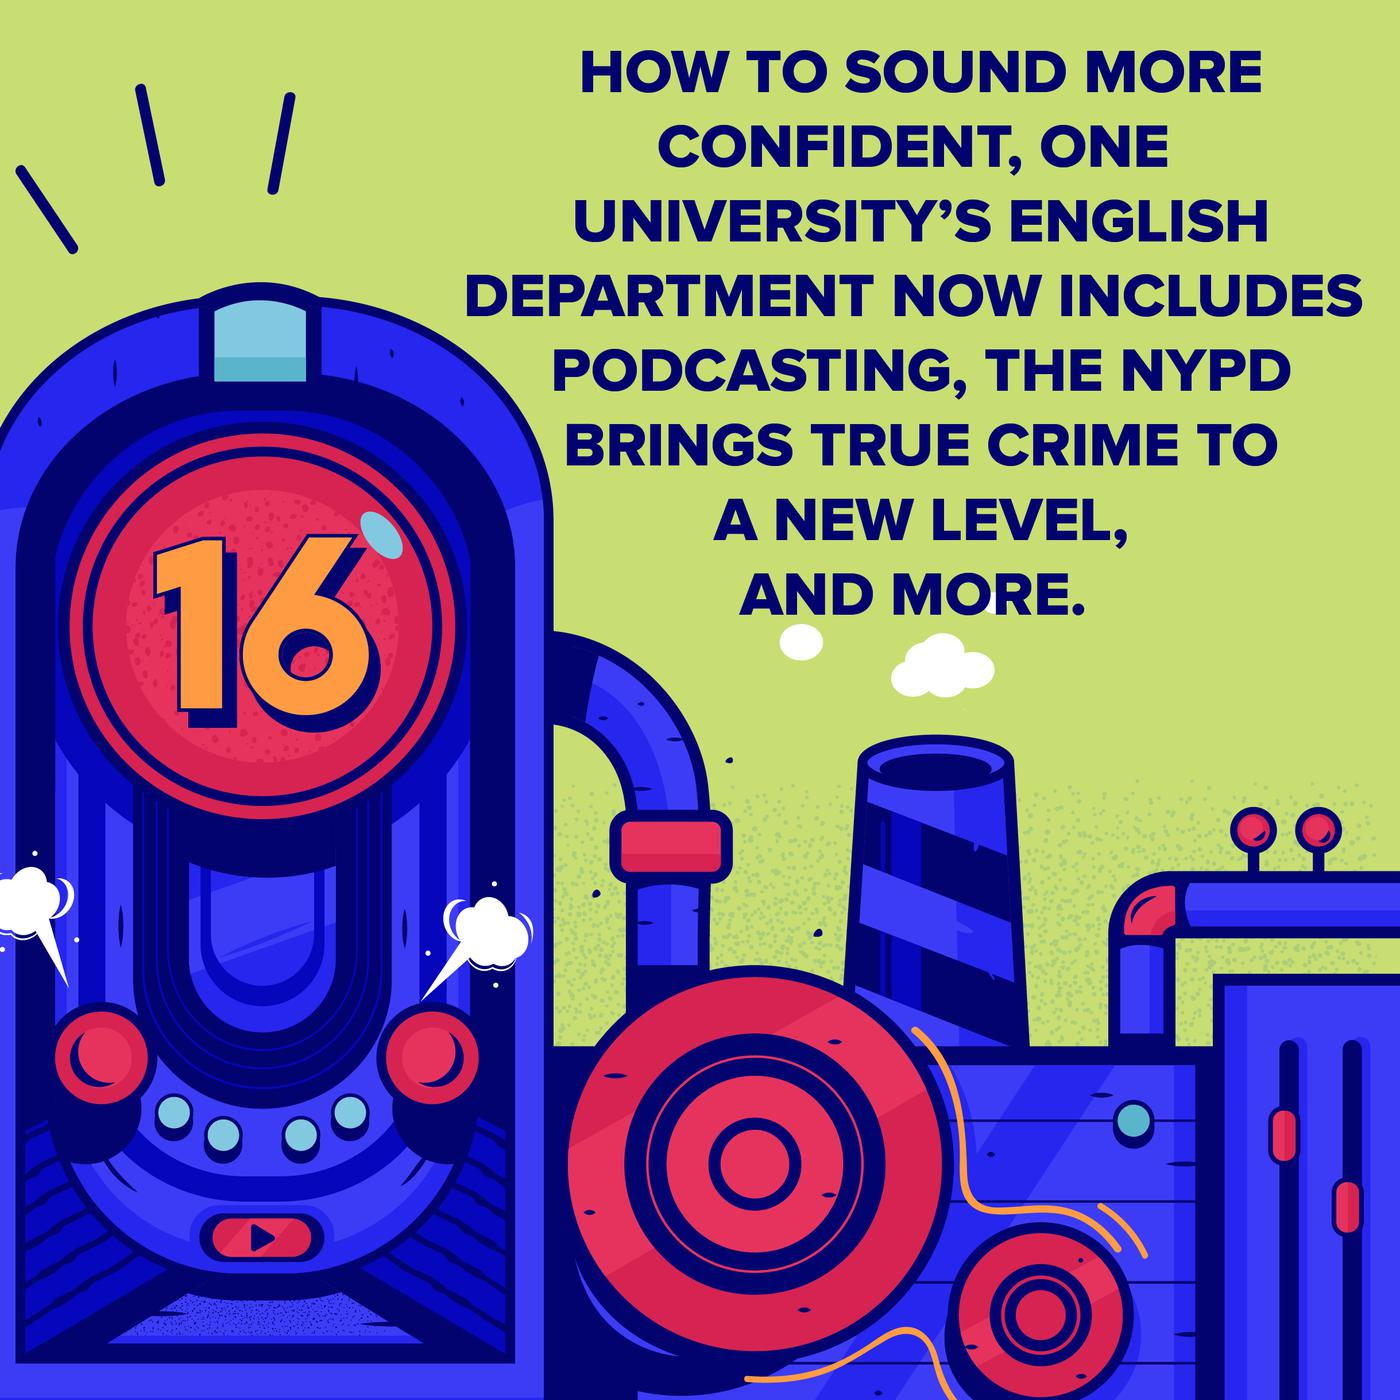 How to Sound More Confident, One University's English Department Now Includes Podcasting, the NYPD Brings True Crime to a New Level, and More.